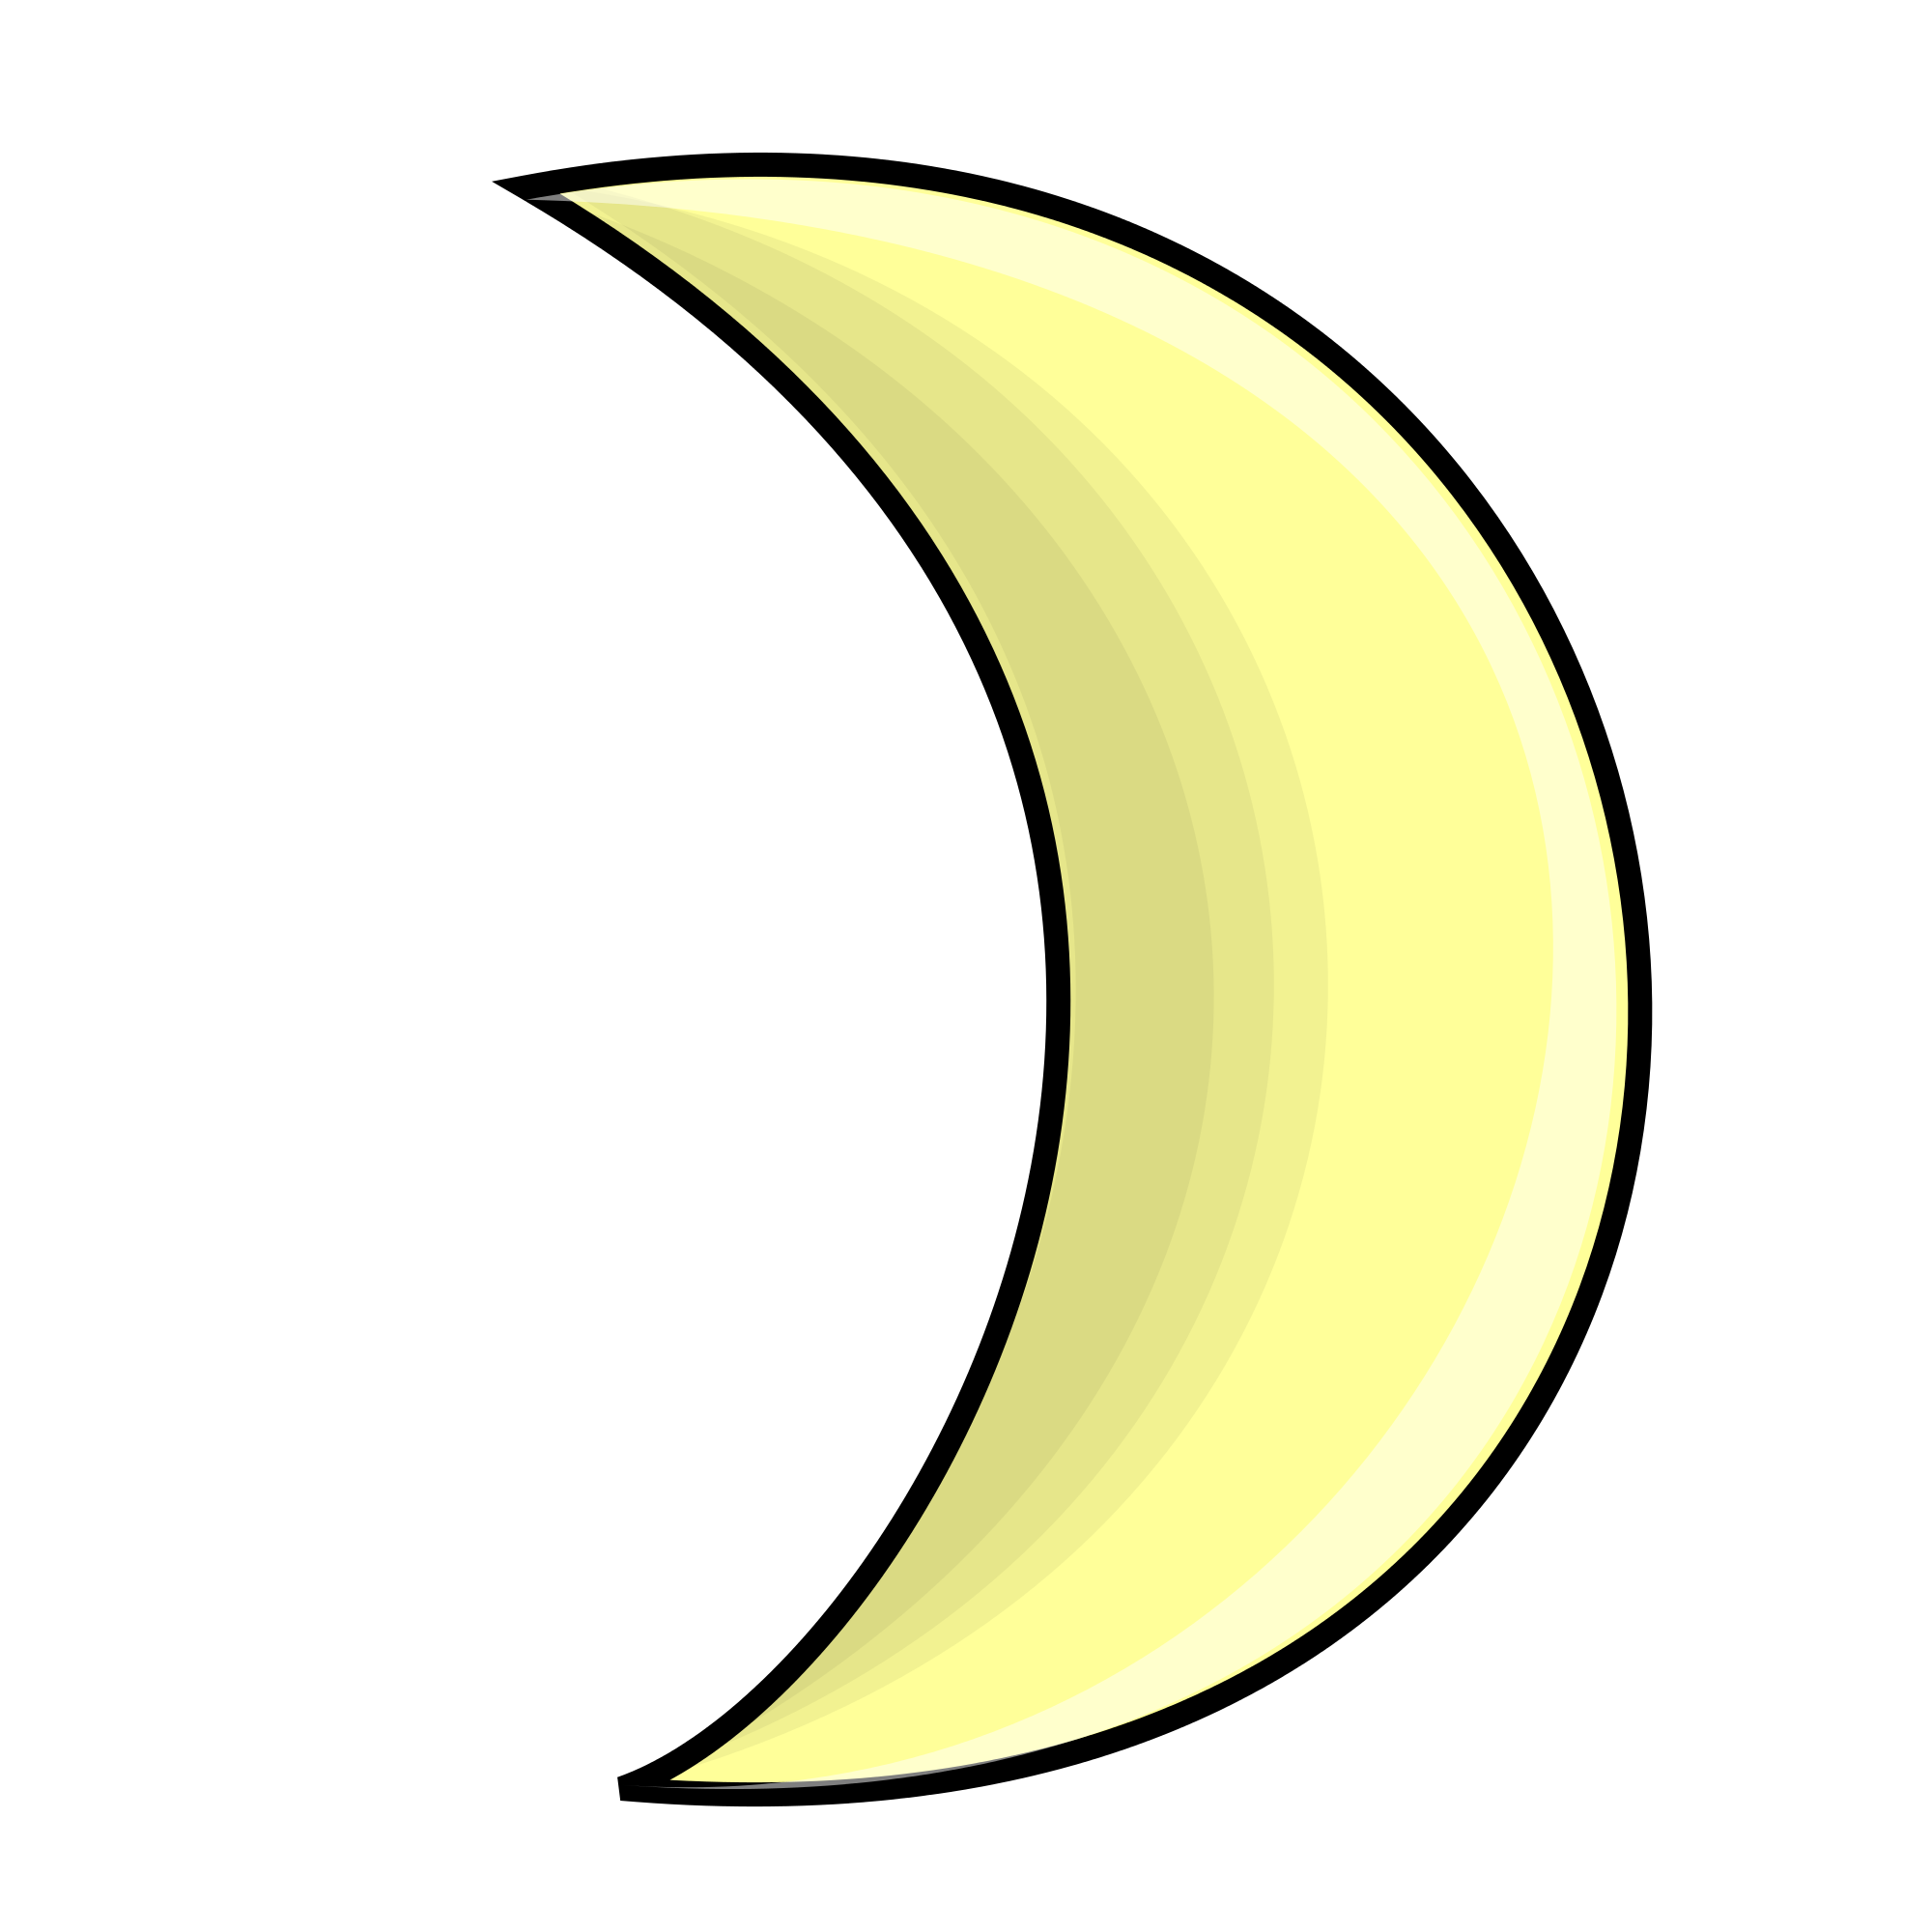 Moon clipart weather. File svg wikimedia commons